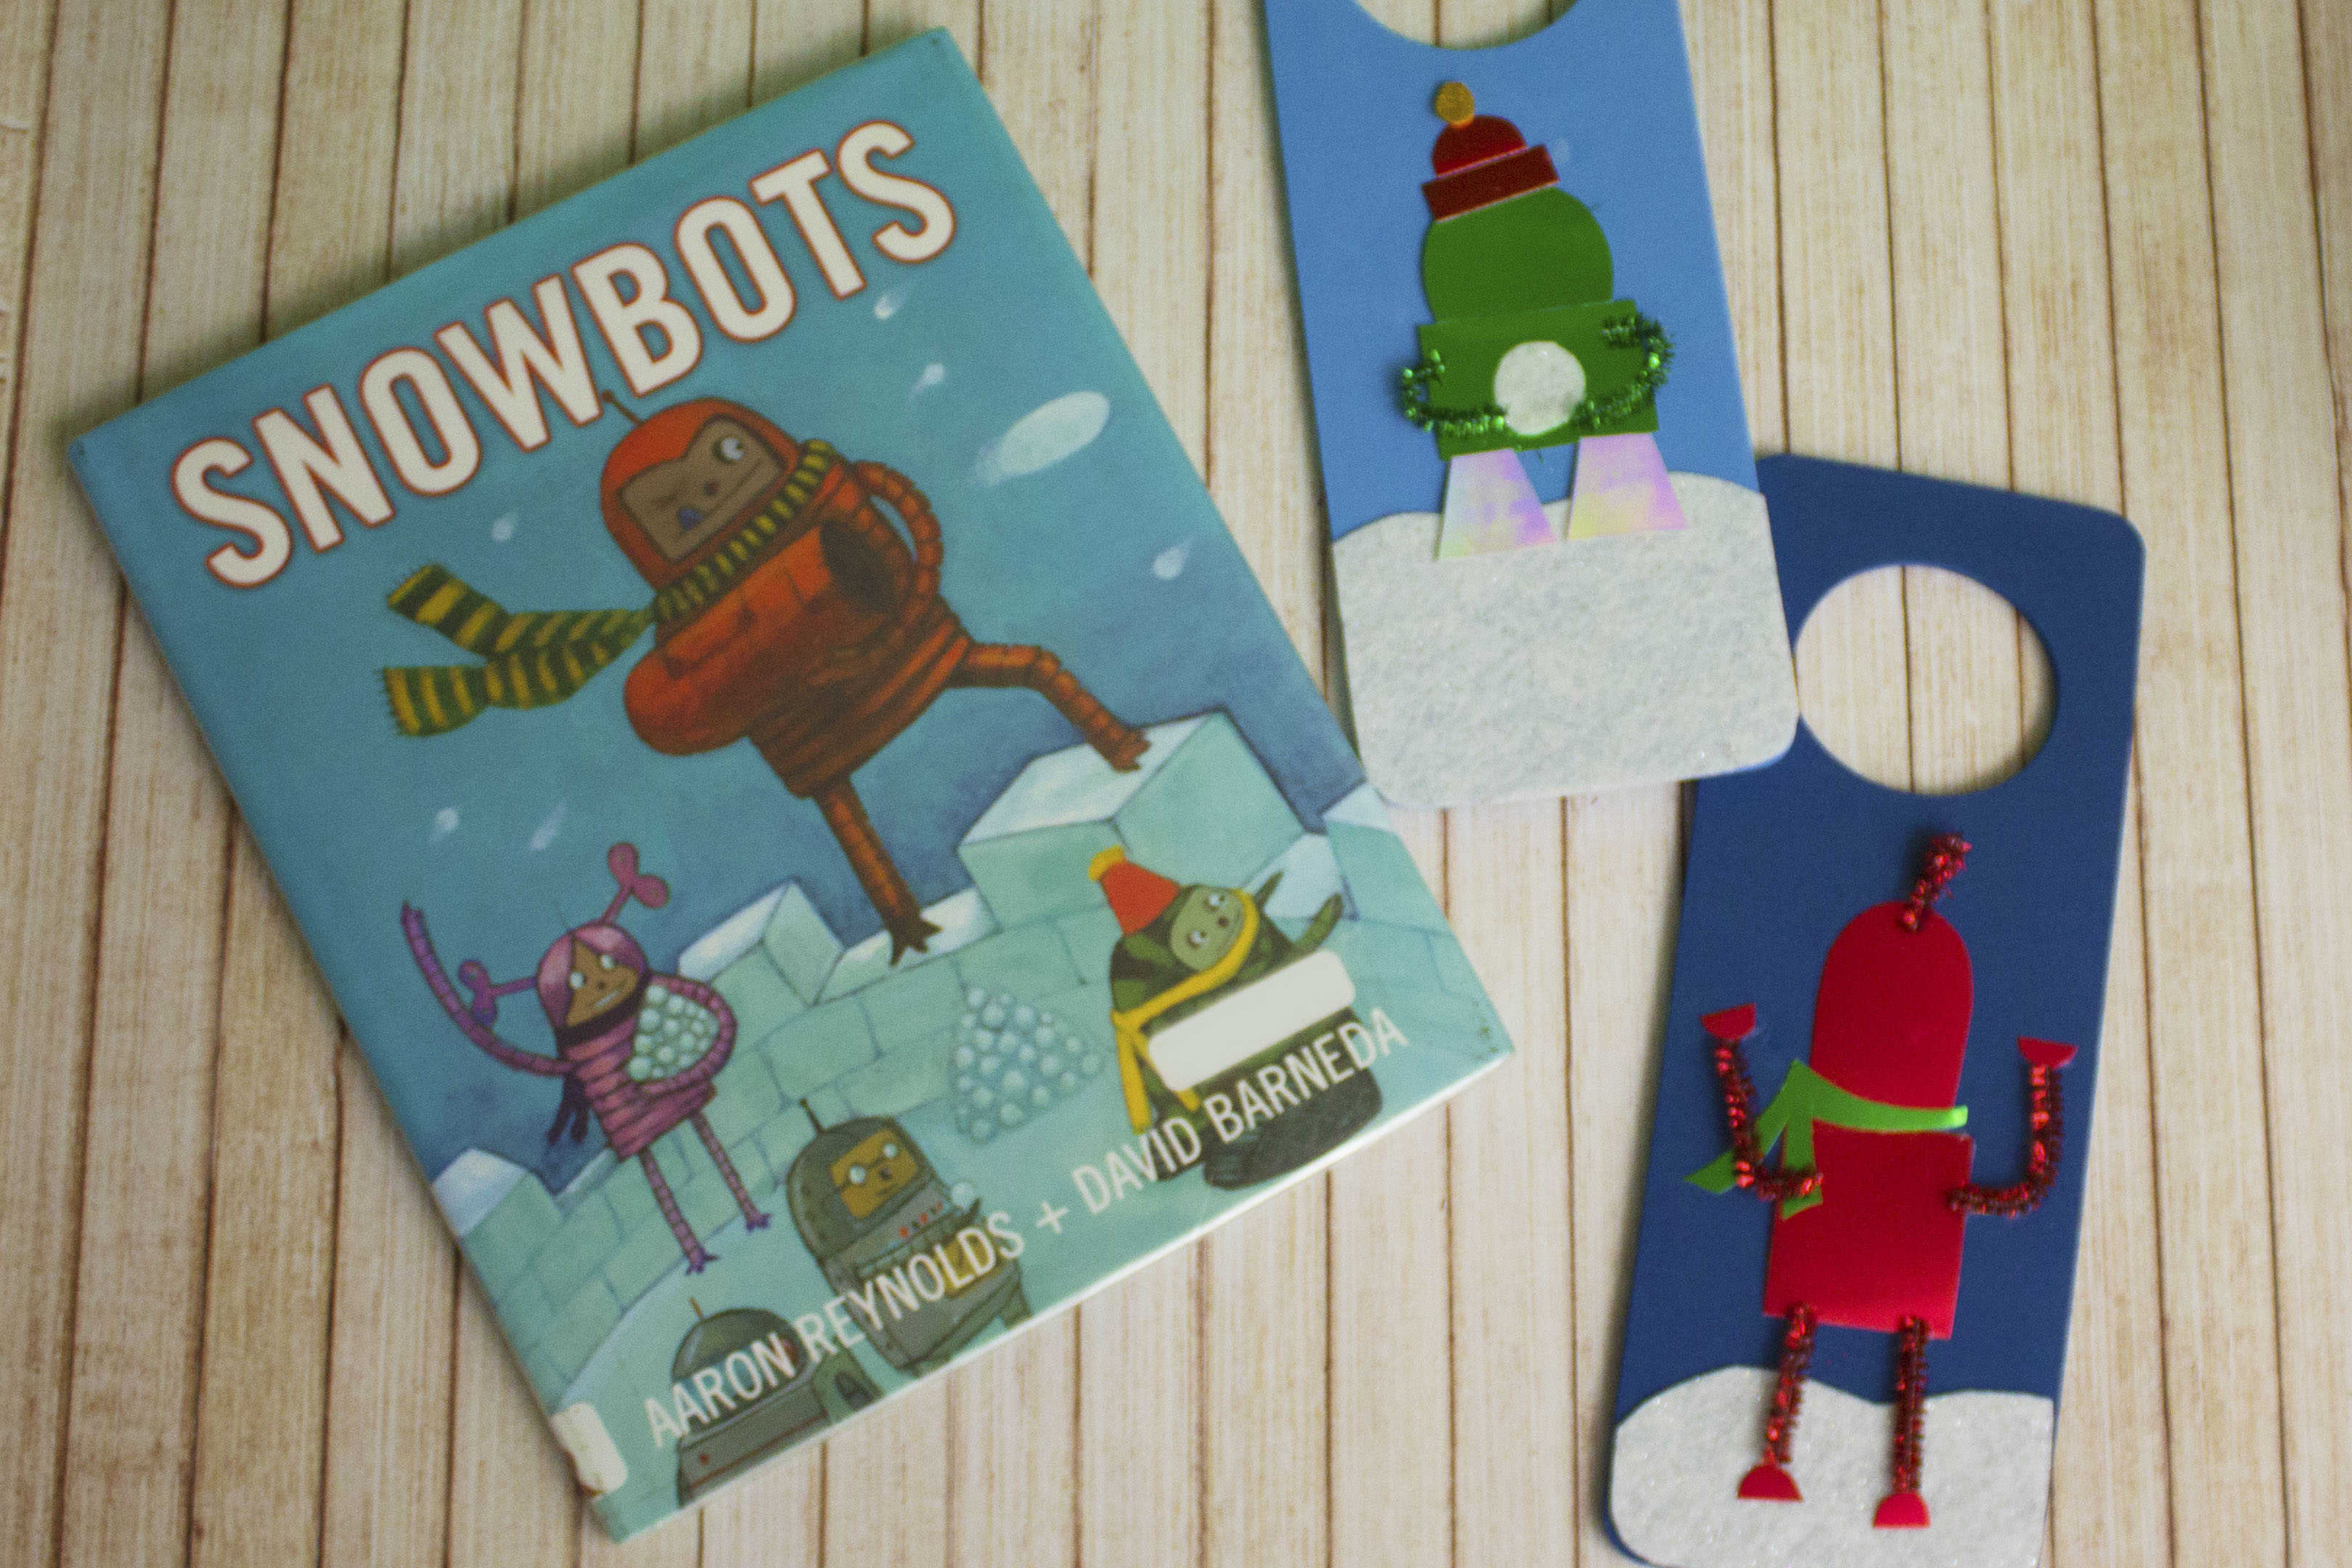 snowbots book and craft